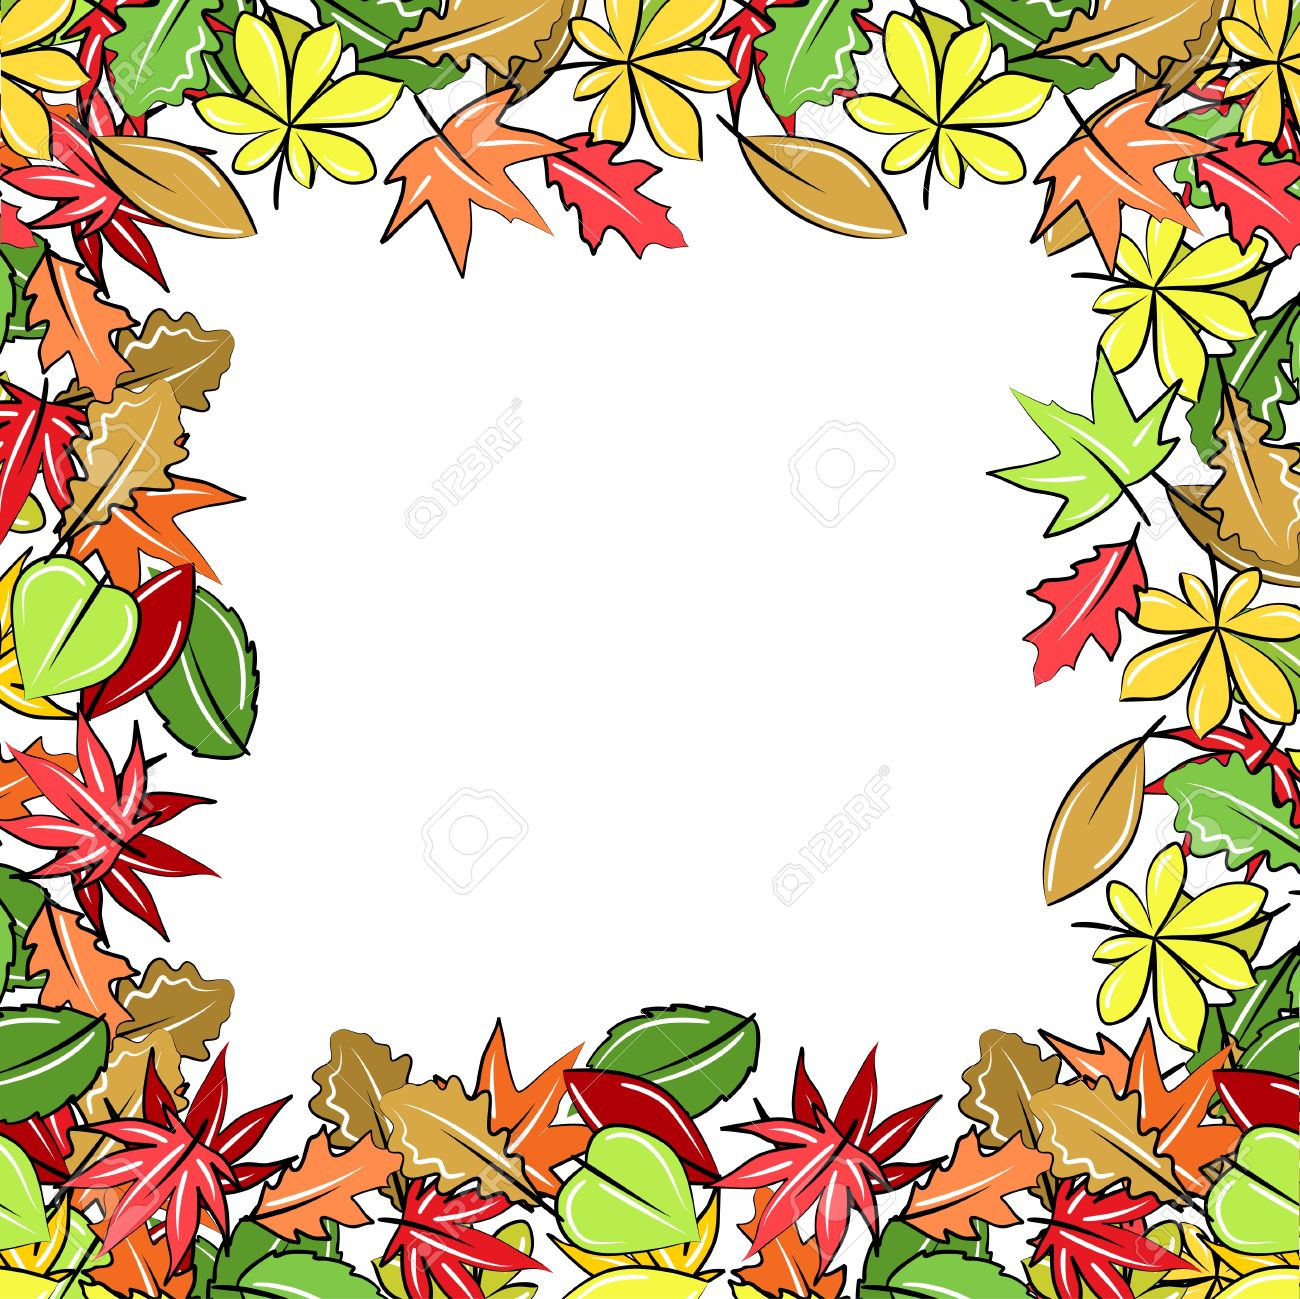 frame made of autumn leaves royalty free cliparts vectors and